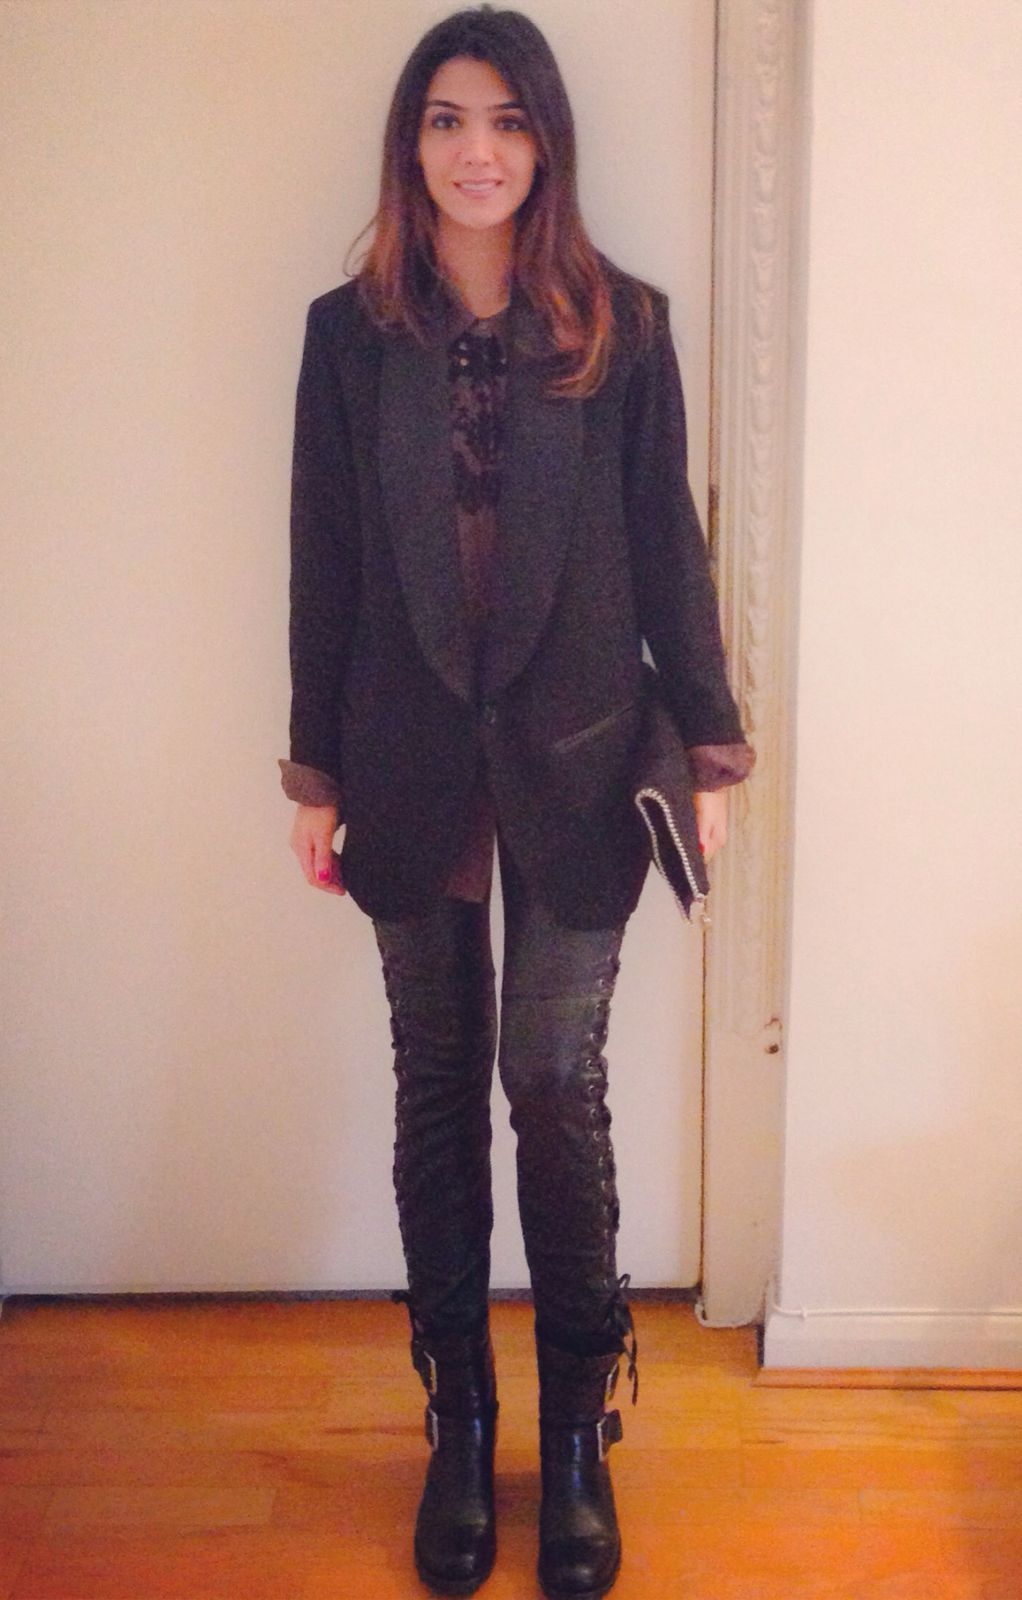 IM x H&M pant and blaser - freelance biker7  boots - stella mccartney clutch - thekooples shirt